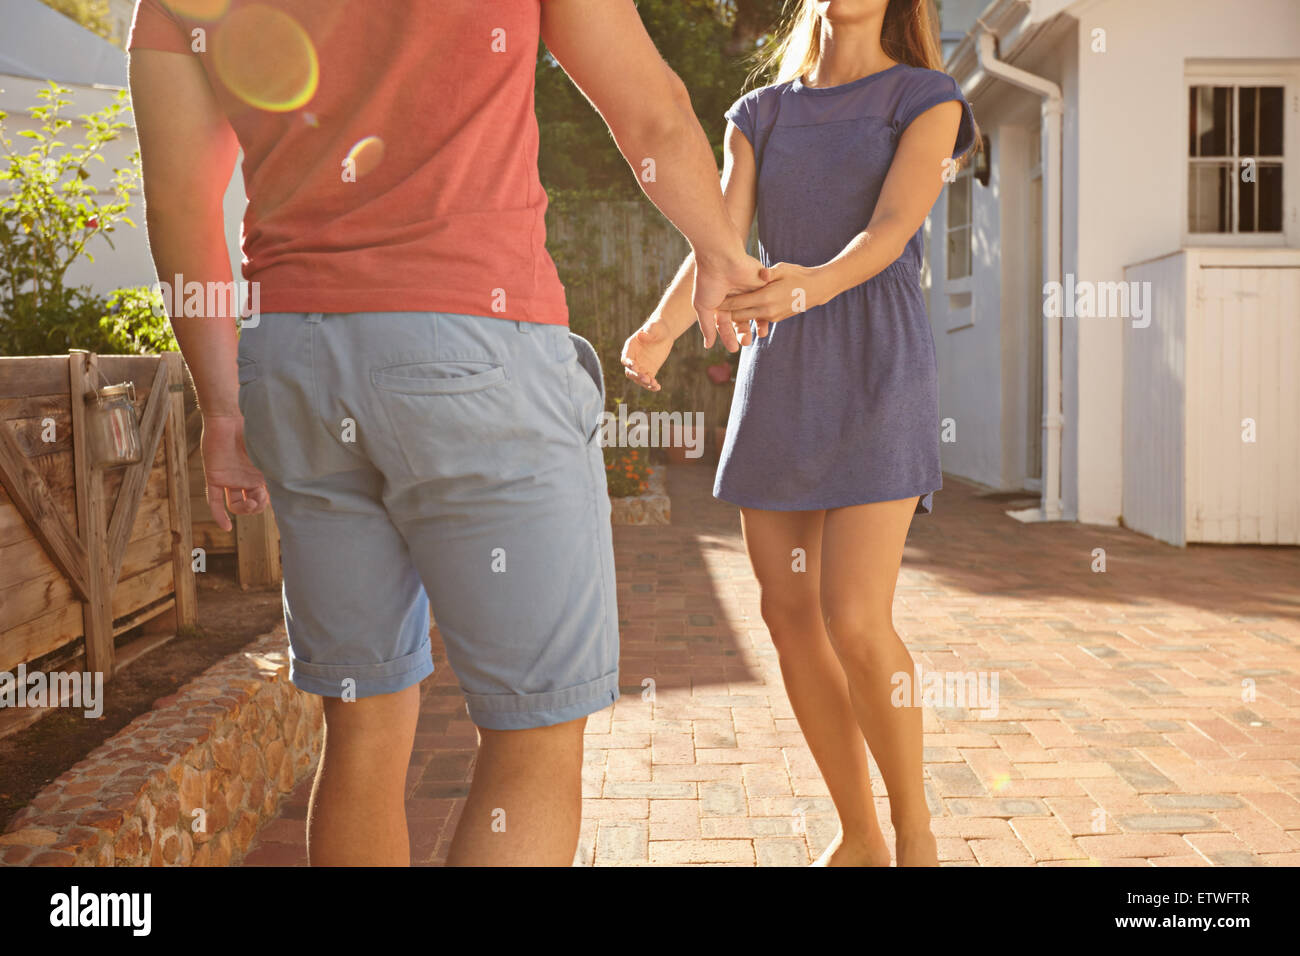 Cropped shot of young couple standing in front of their house holding hands. Man and woman in casuals outside their - Stock Image